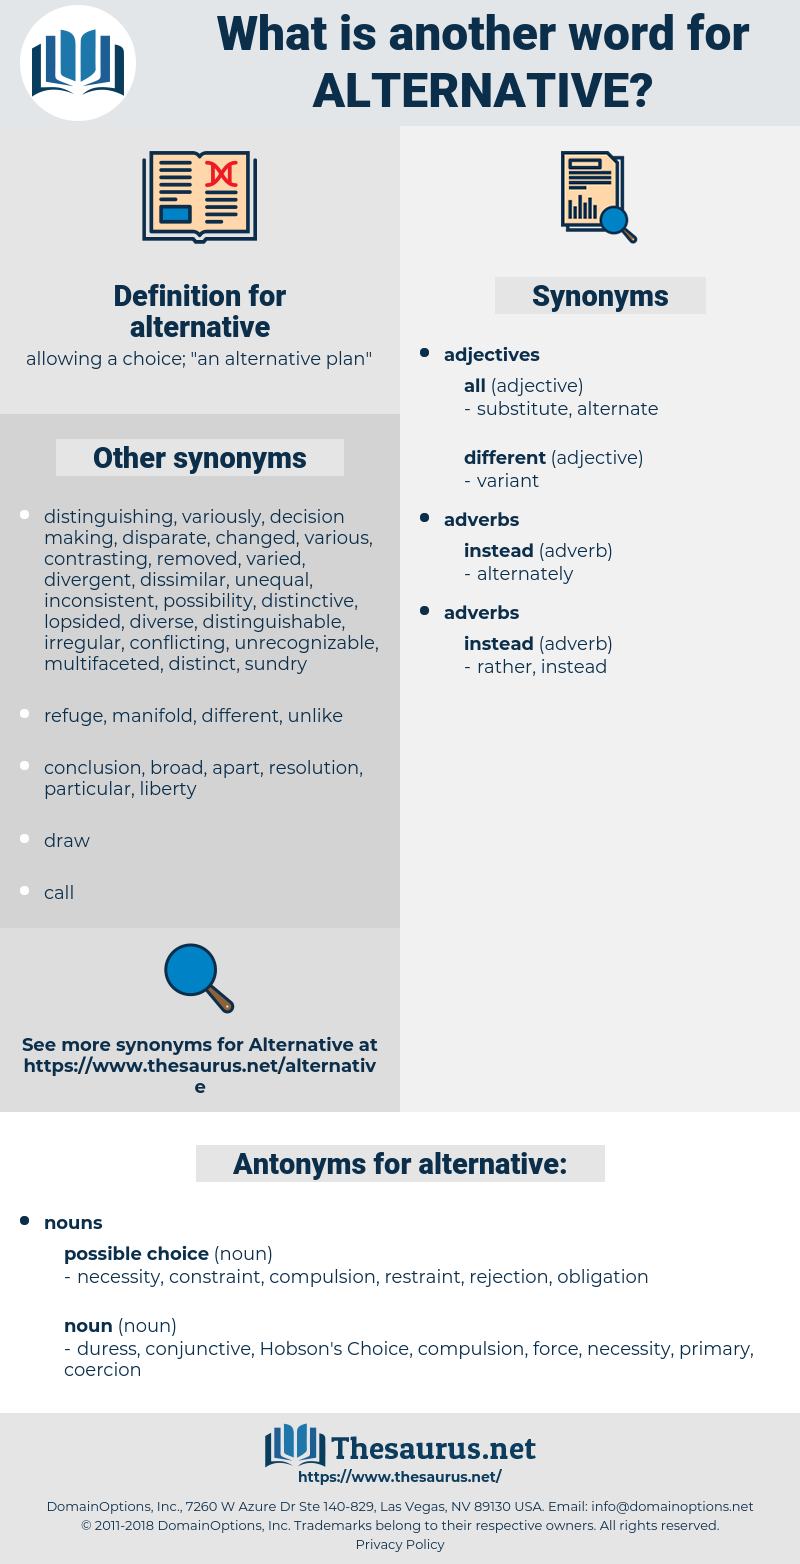 alternative, synonym alternative, another word for alternative, words like alternative, thesaurus alternative